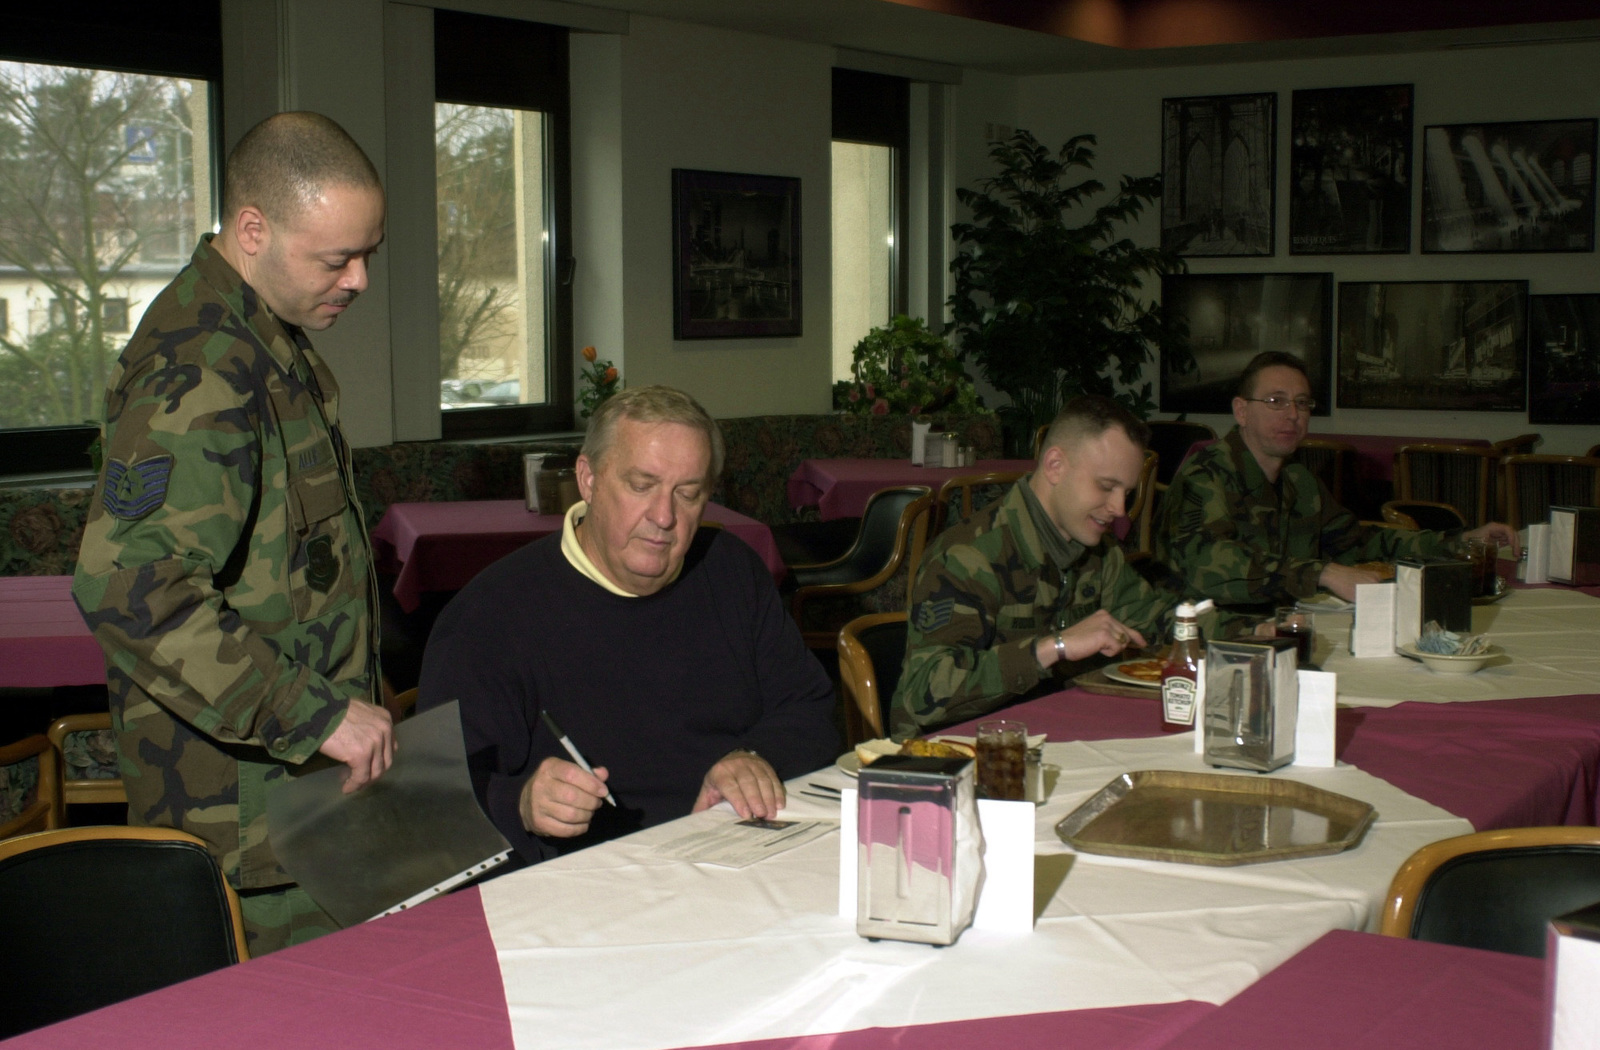 US Air Force (USAF) CHIEF MASTER Sergeant of the Air Force (CMSAF) (ret) James C. Binnicker signs his biography sheet for USAF Technical Sergeant Zamounde Allie, 723rd Air Mobility Squadron (AMS), during the chief's visit to the Rheinland Inn Dining Facility at Ramstein Air Base (AB), Germany